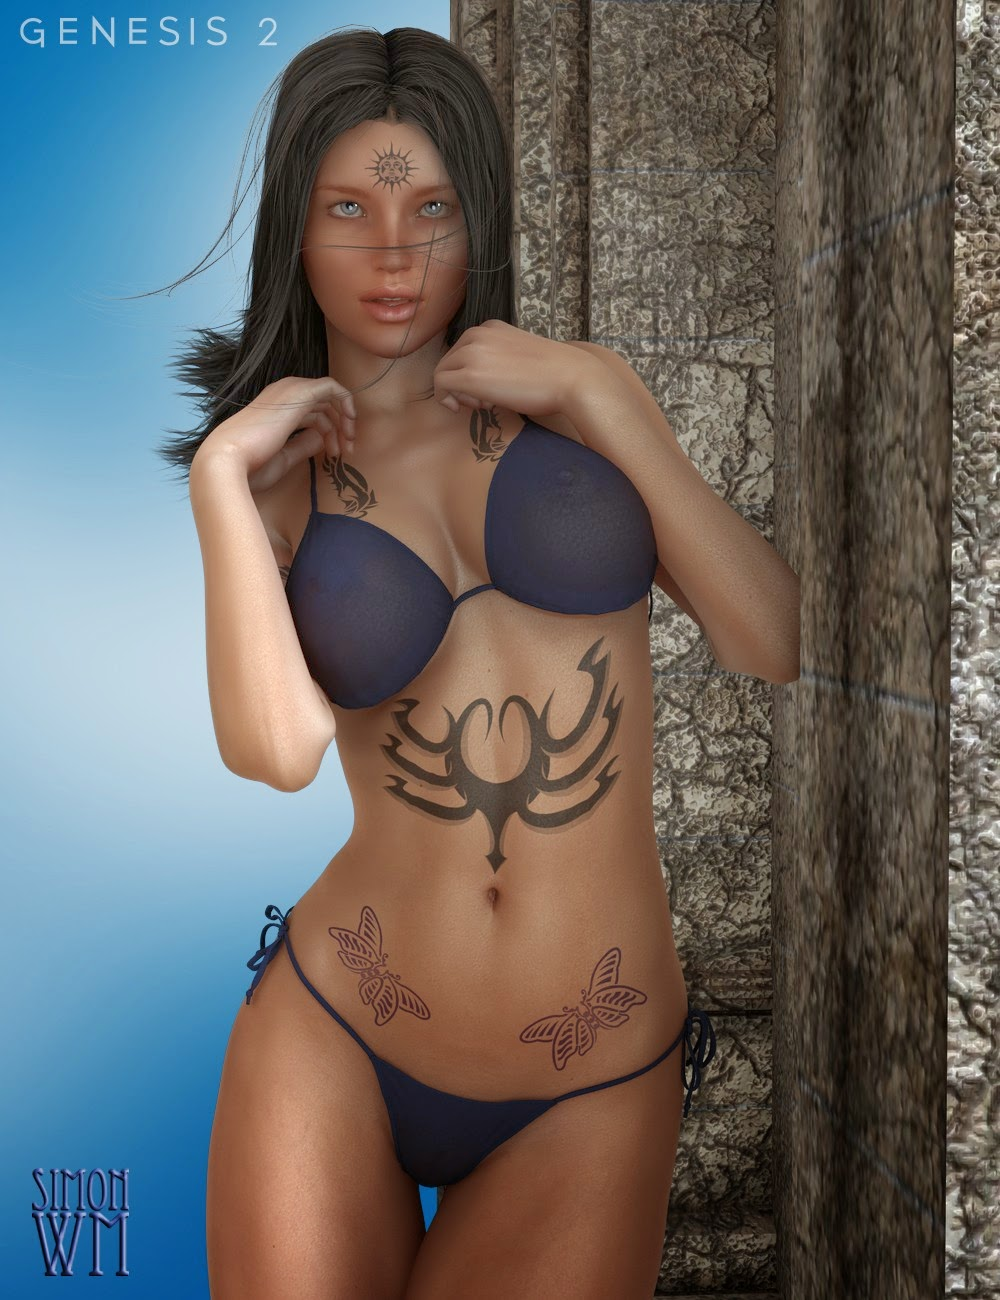 Tattoo Parlor Genesis 2 Female and Victoria 6: Volume 2